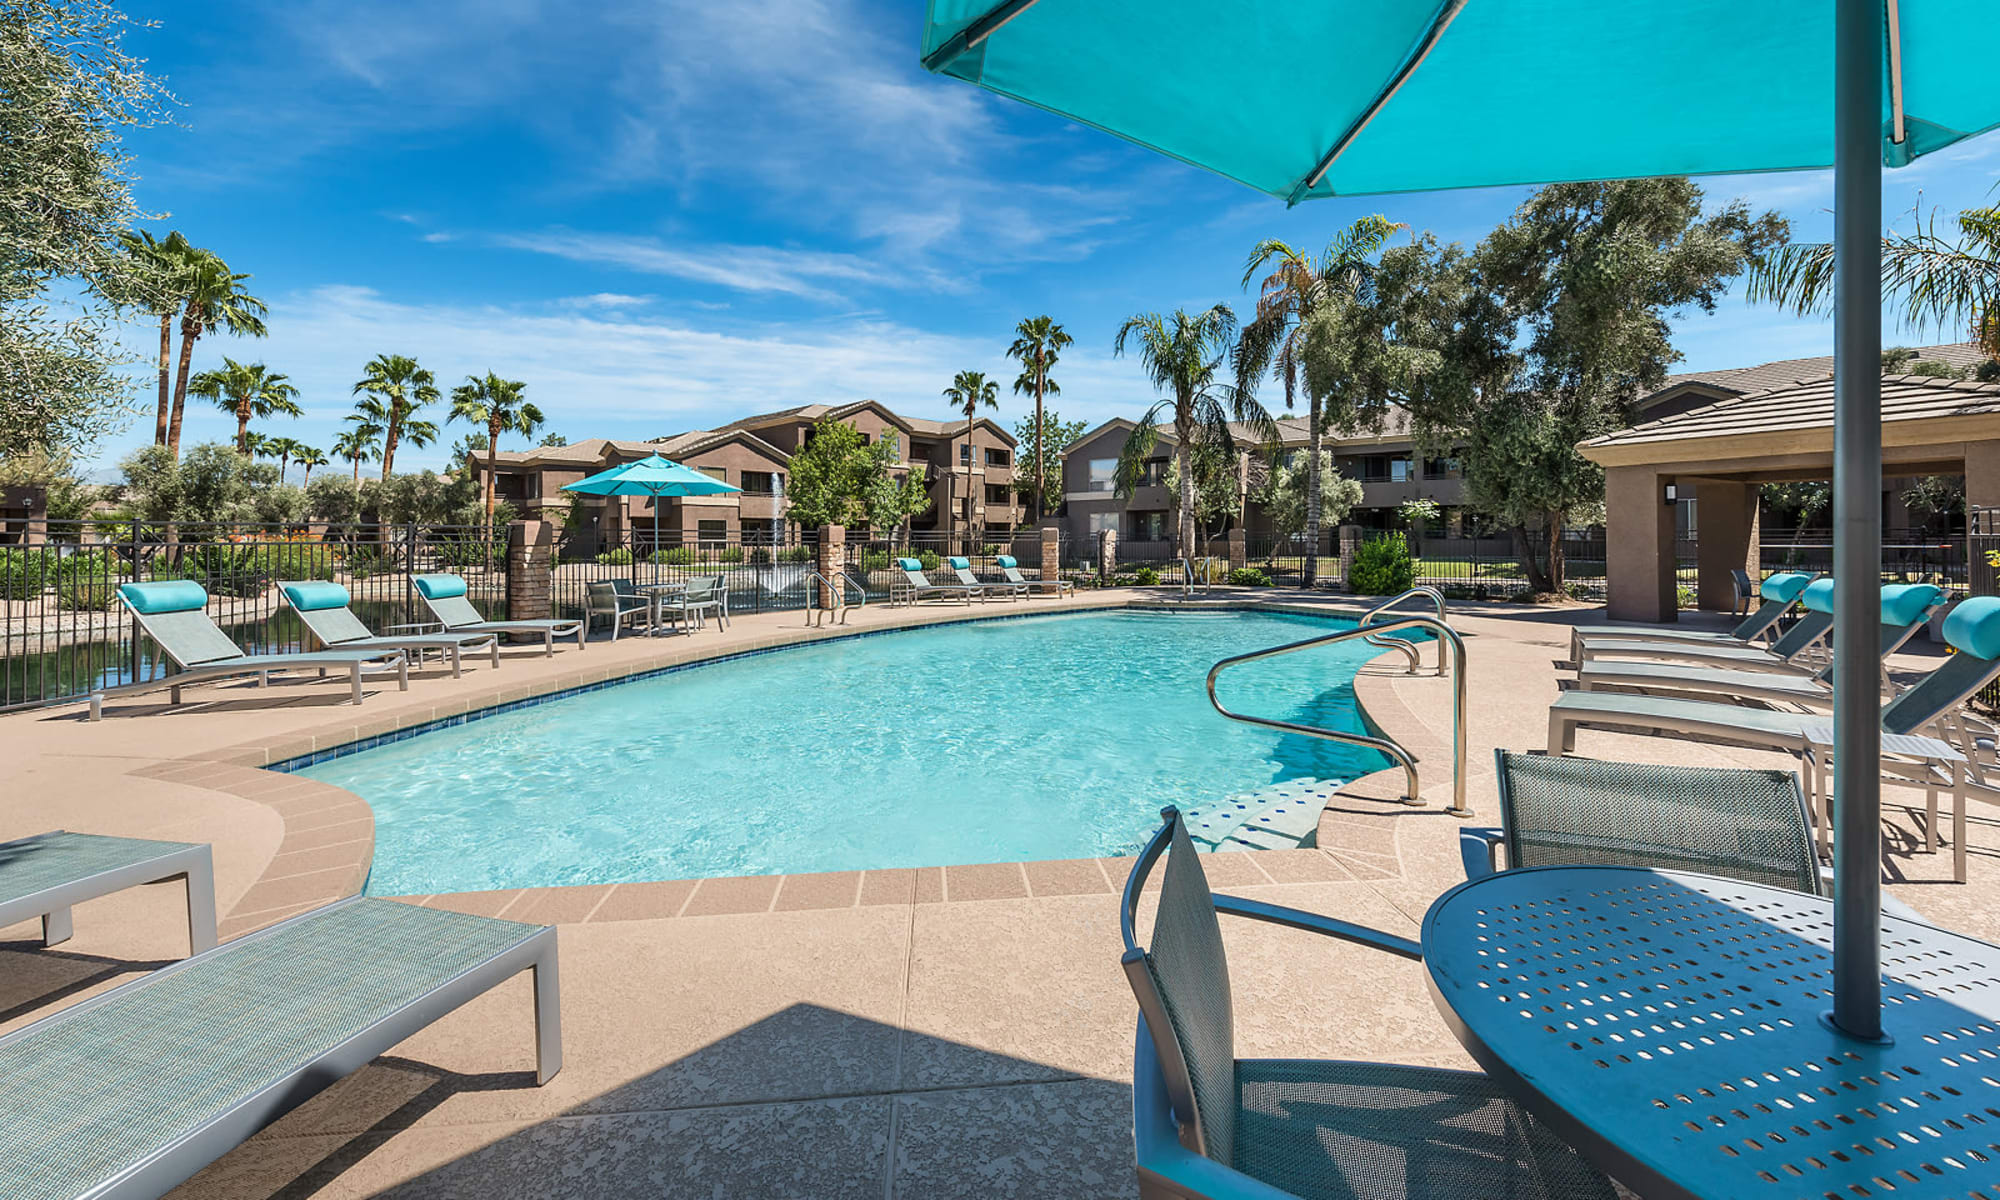 Apartments at Laguna at Arrowhead Ranch in Glendale, Arizona